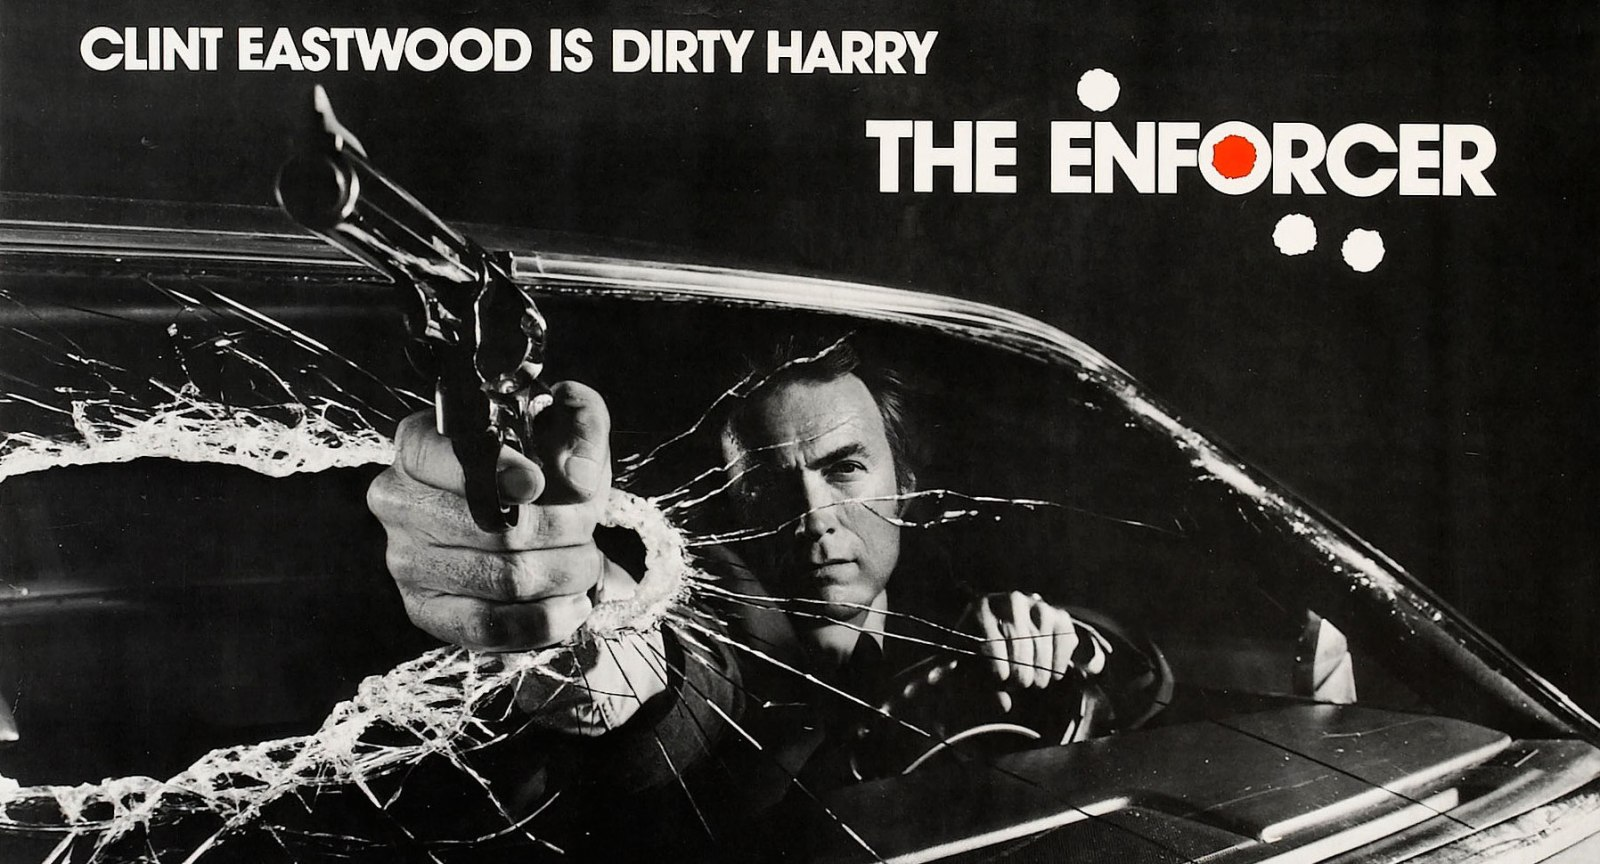 20. The Enforcer (1976)